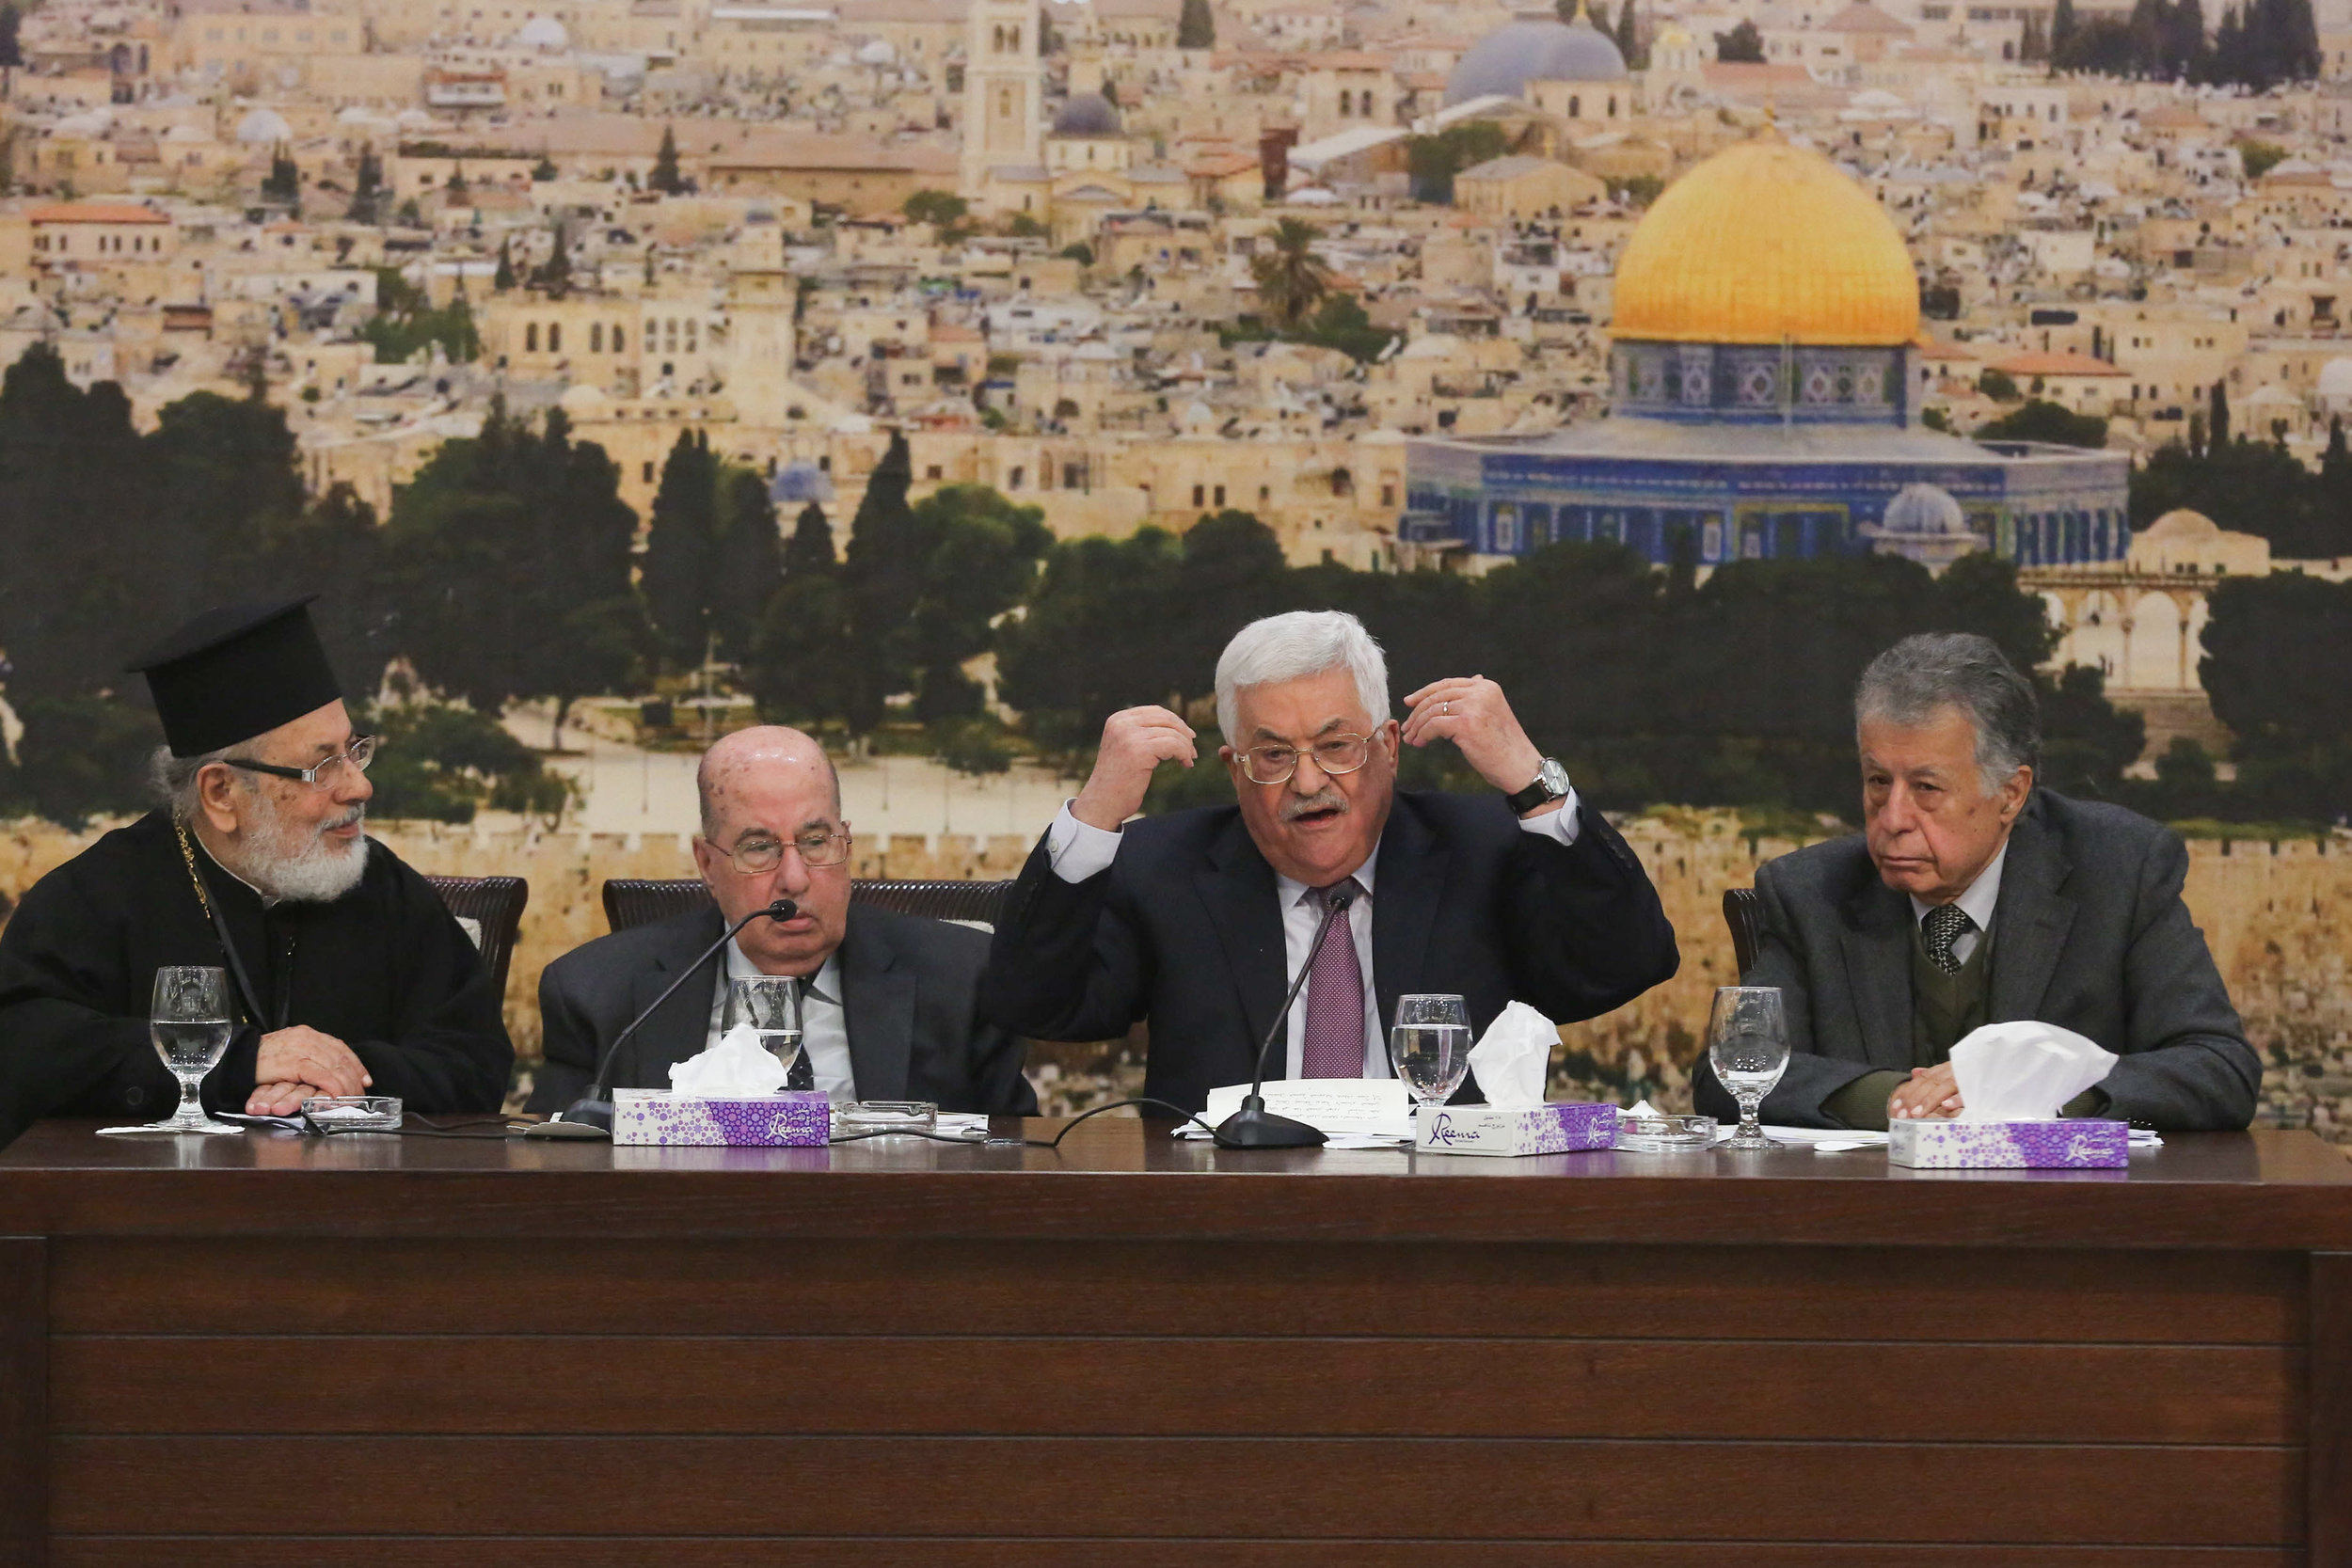 Palestinian Authority President Mahmoud Abbas (second from right) speaks during a meeting of the Palestinian Central Council in Ramallah on January 14, 2018. Credit: Flash90.